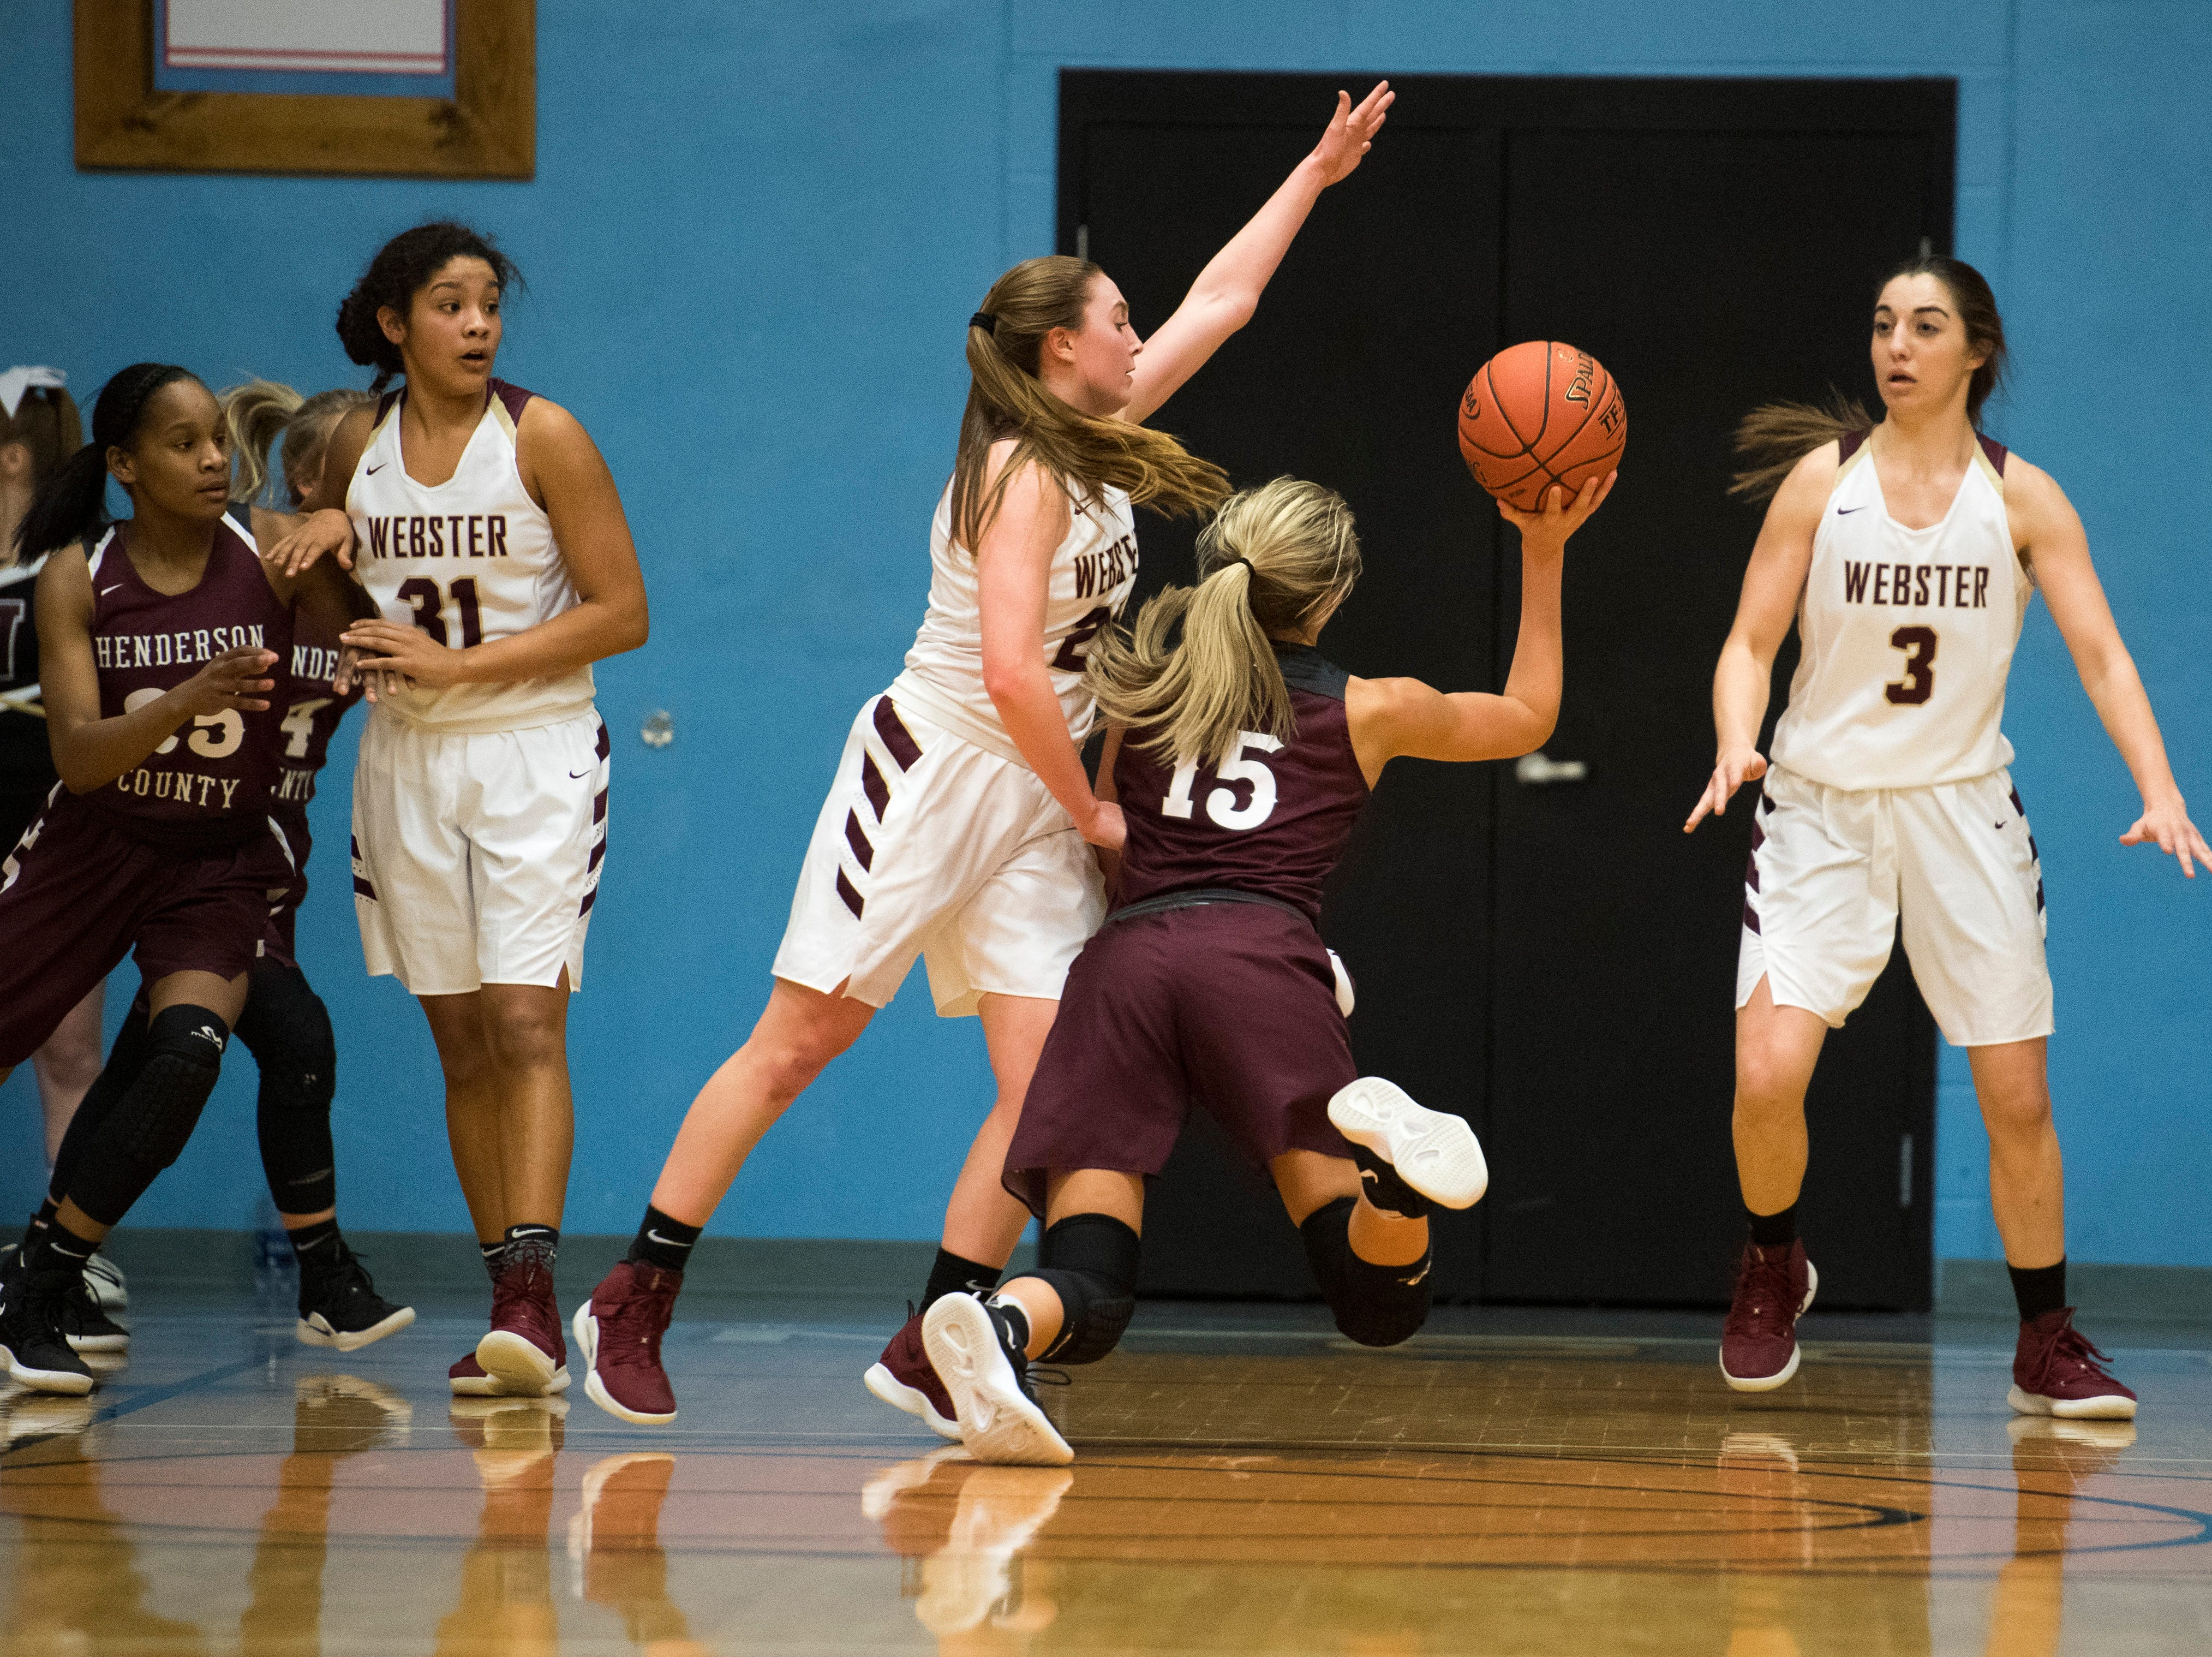 Henderson County's Alyssa Dickson (15) takes a shot while falling to the floor during the 2019 Sixth District championship game against the Webster County Lady Trojans at Union County High School Thursday, Feb. 21, 2019.